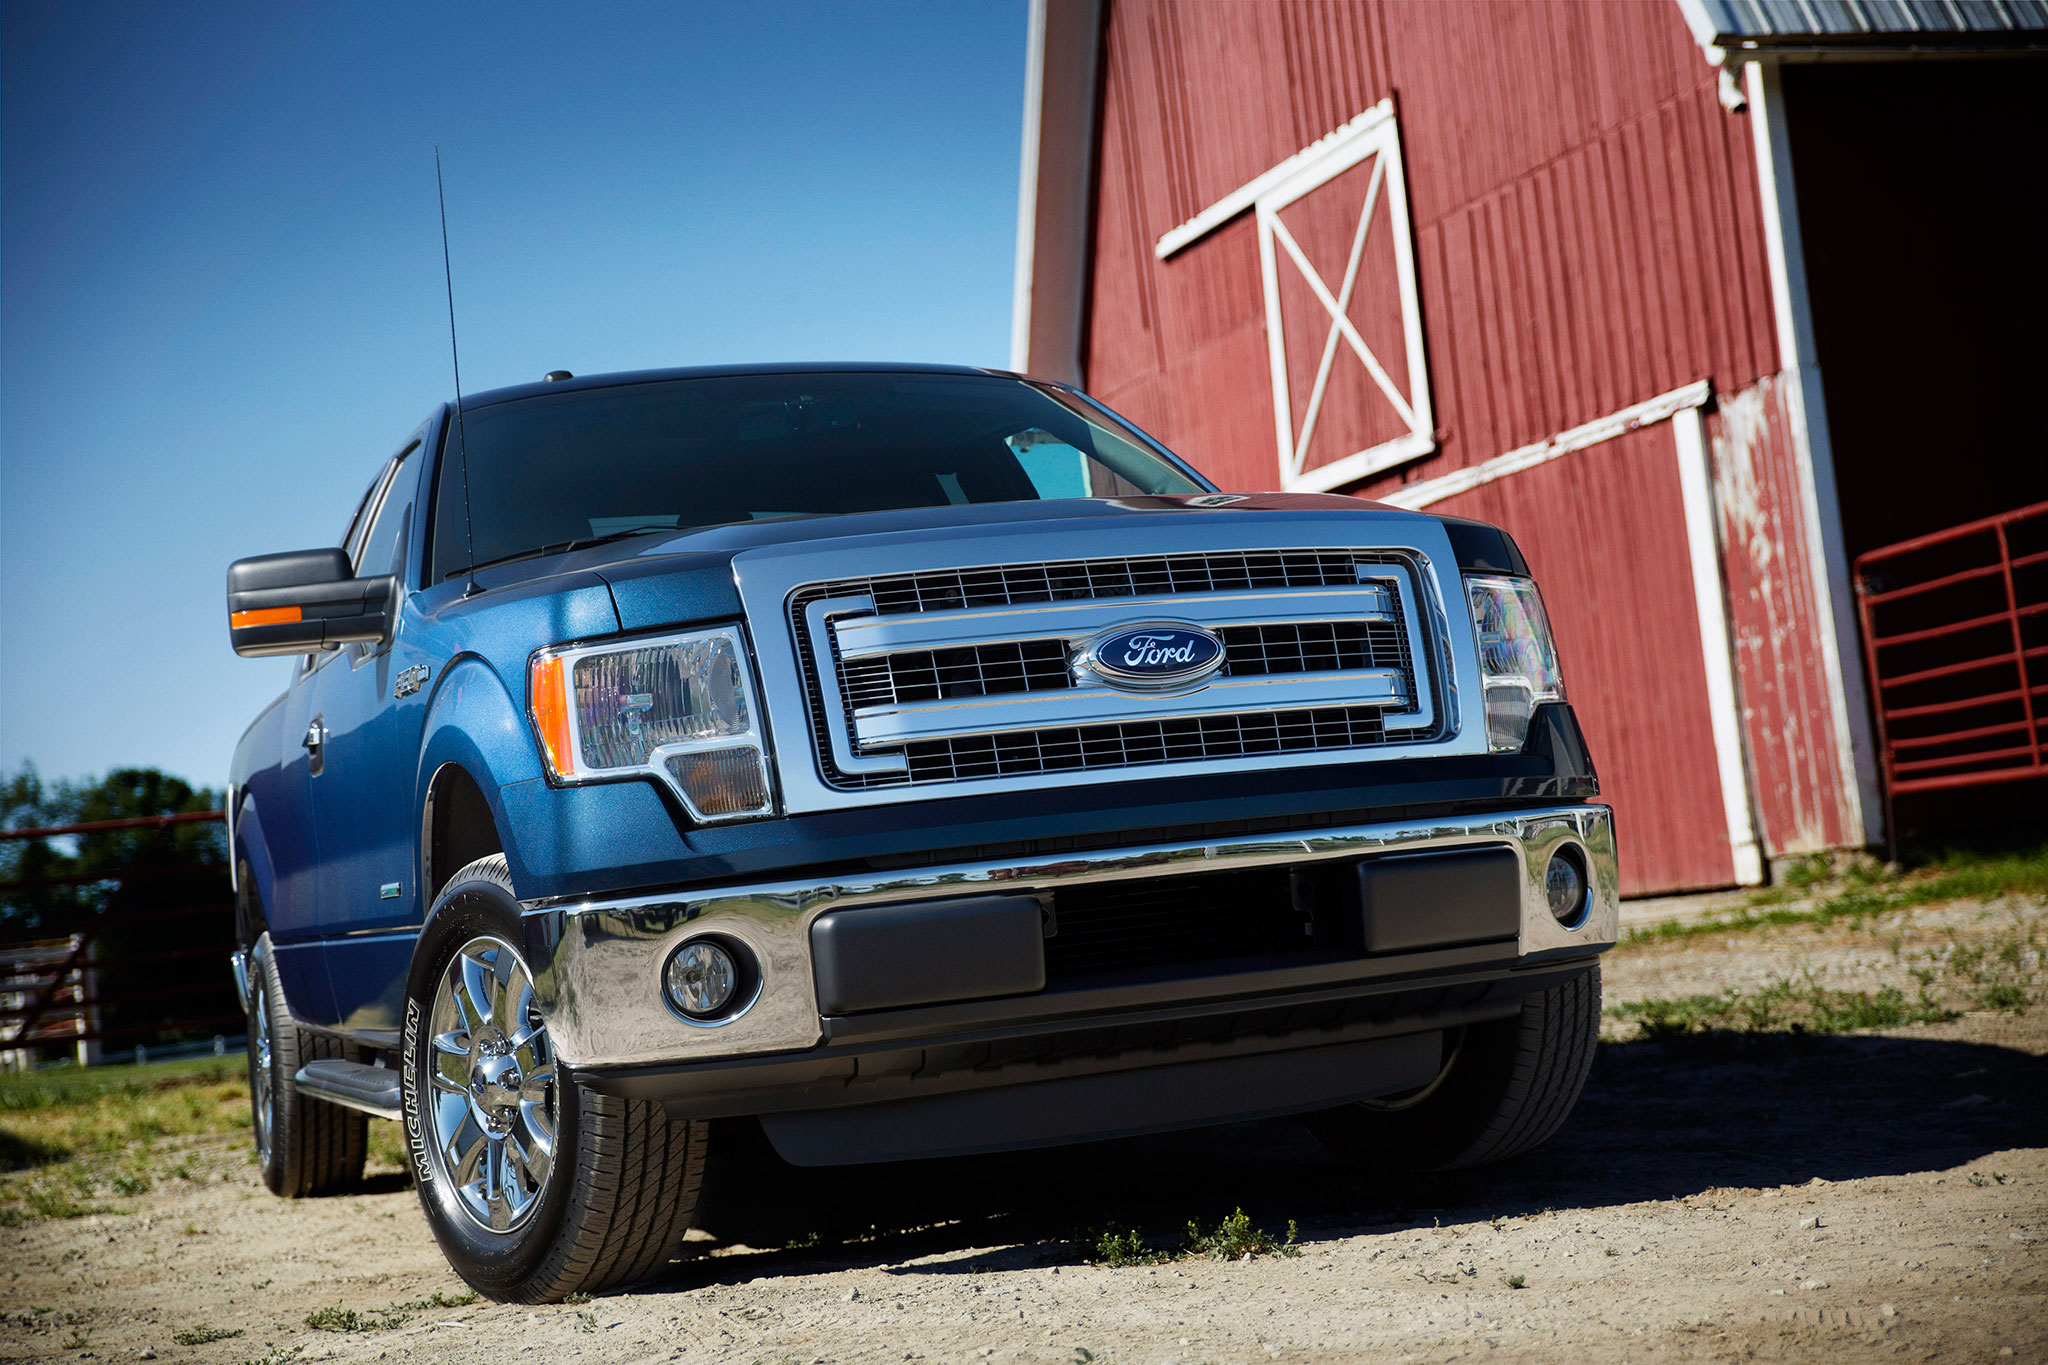 2014 Ford F 150 XLT Front View